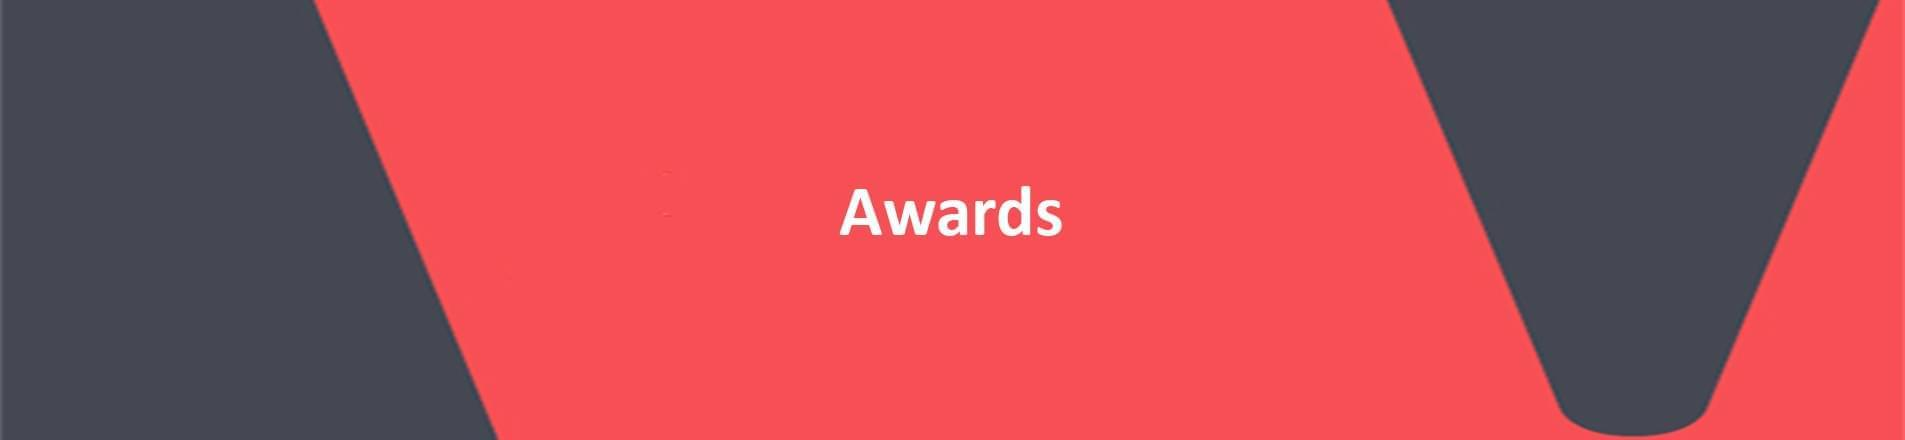 Image of the word awards